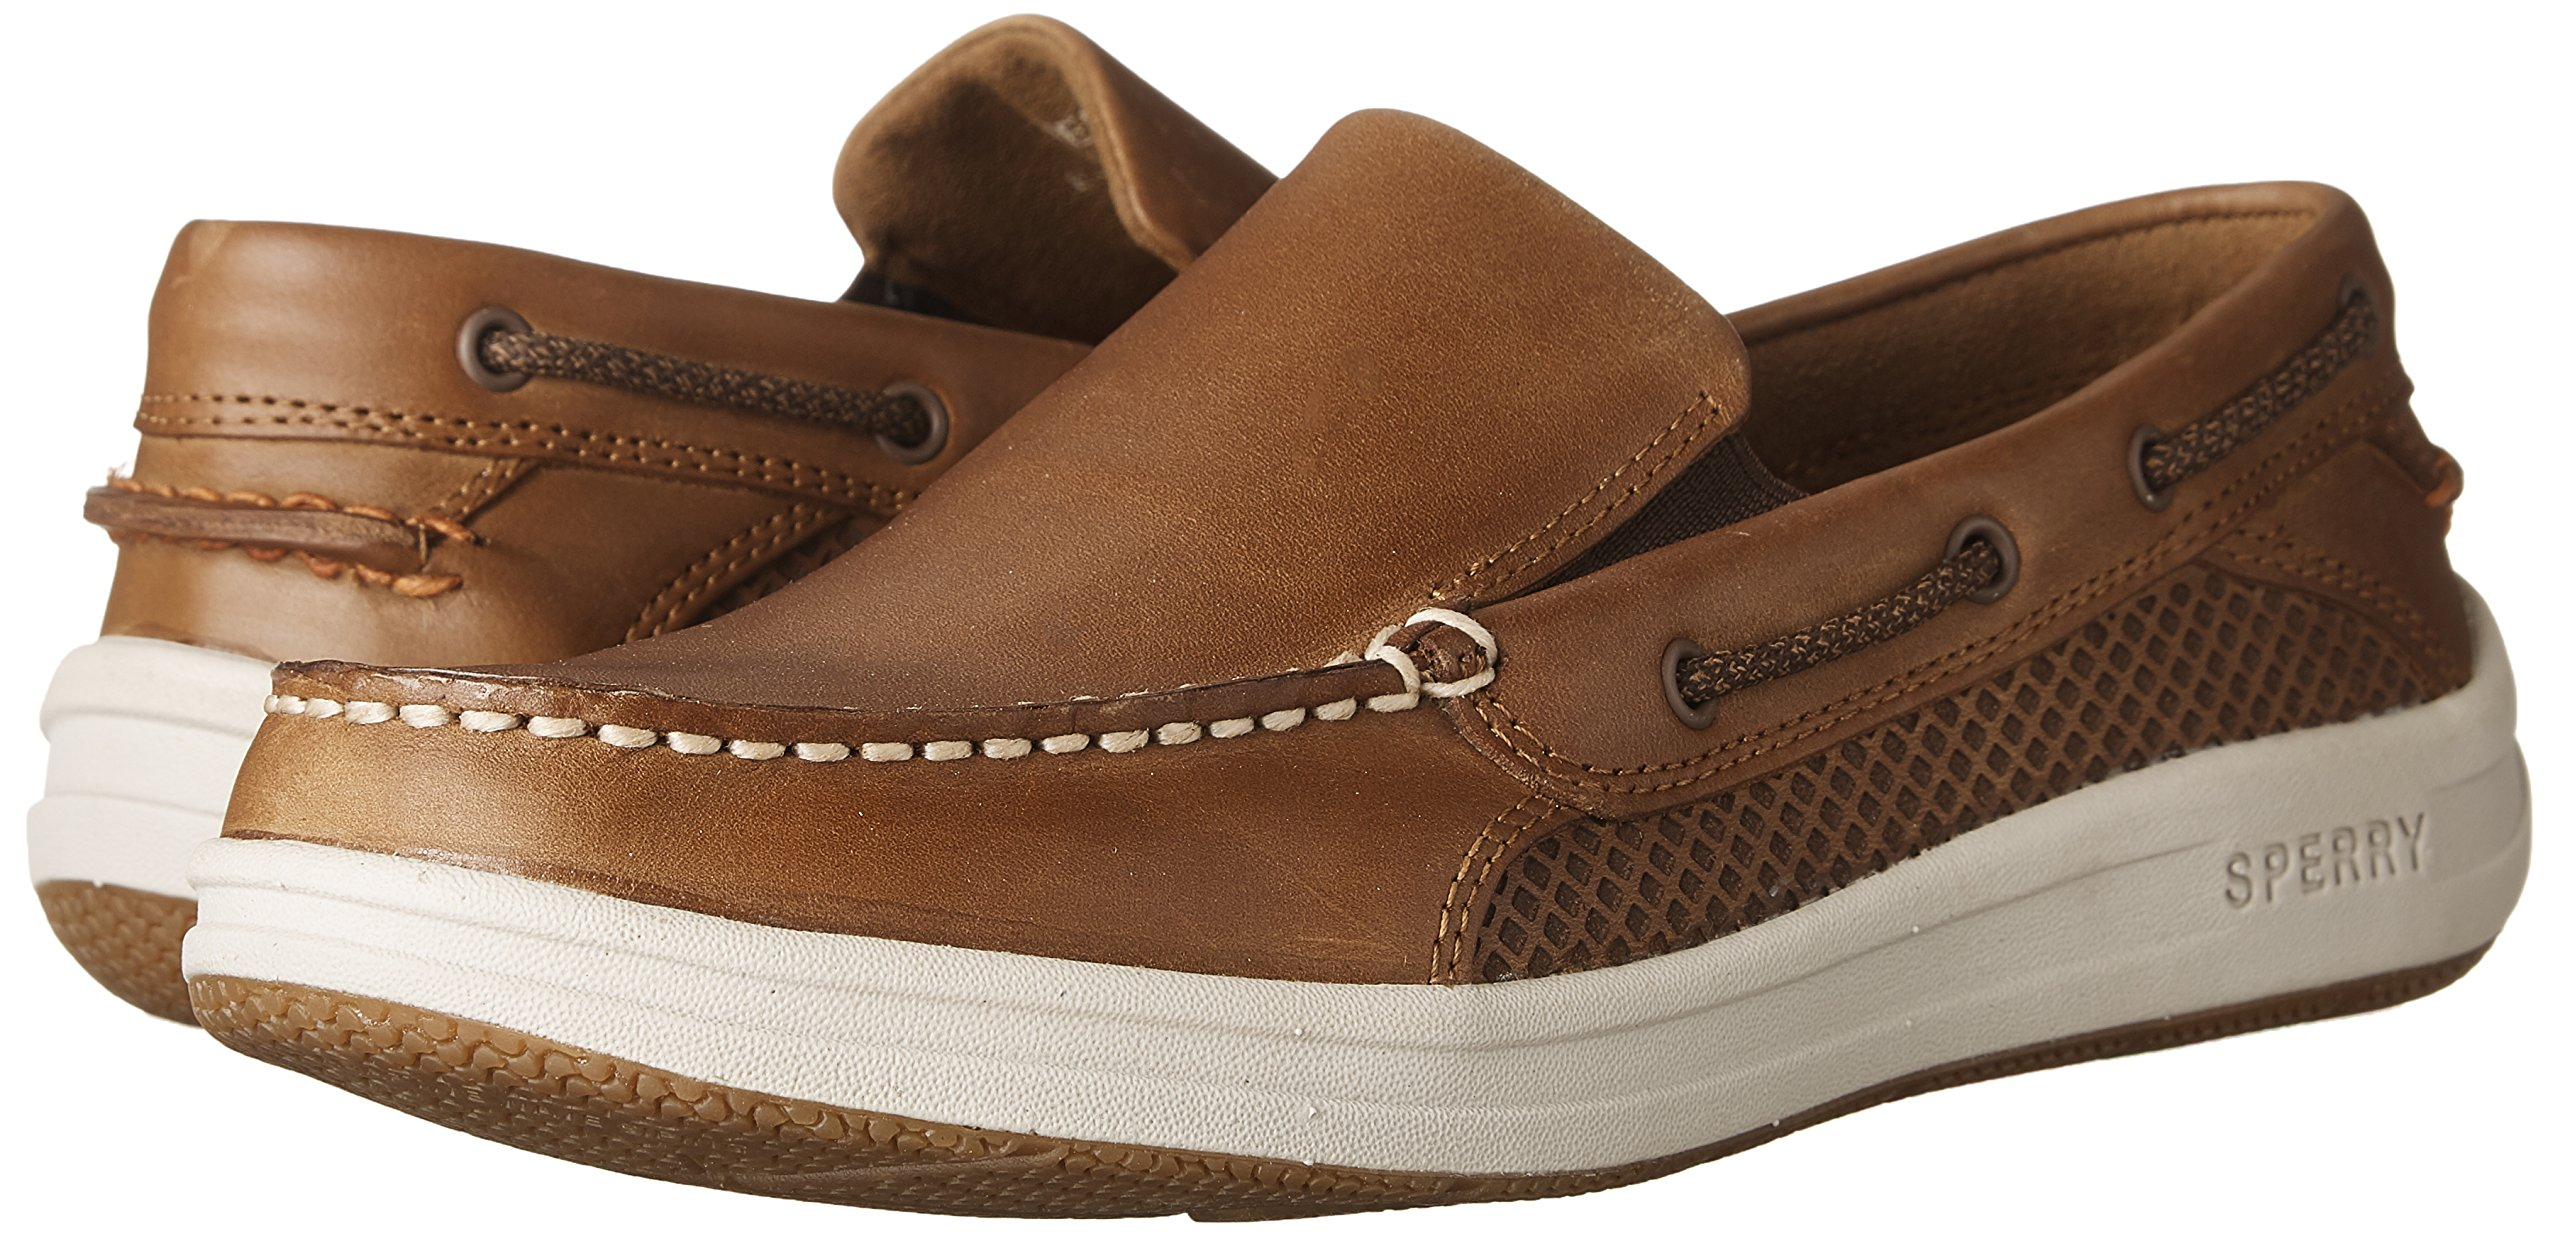 Sperry Top-Sider Men's Gamefish Slip On Boat Shoe, Dark Tan, 10.5 M US by Sperry Top-Sider (Image #6)